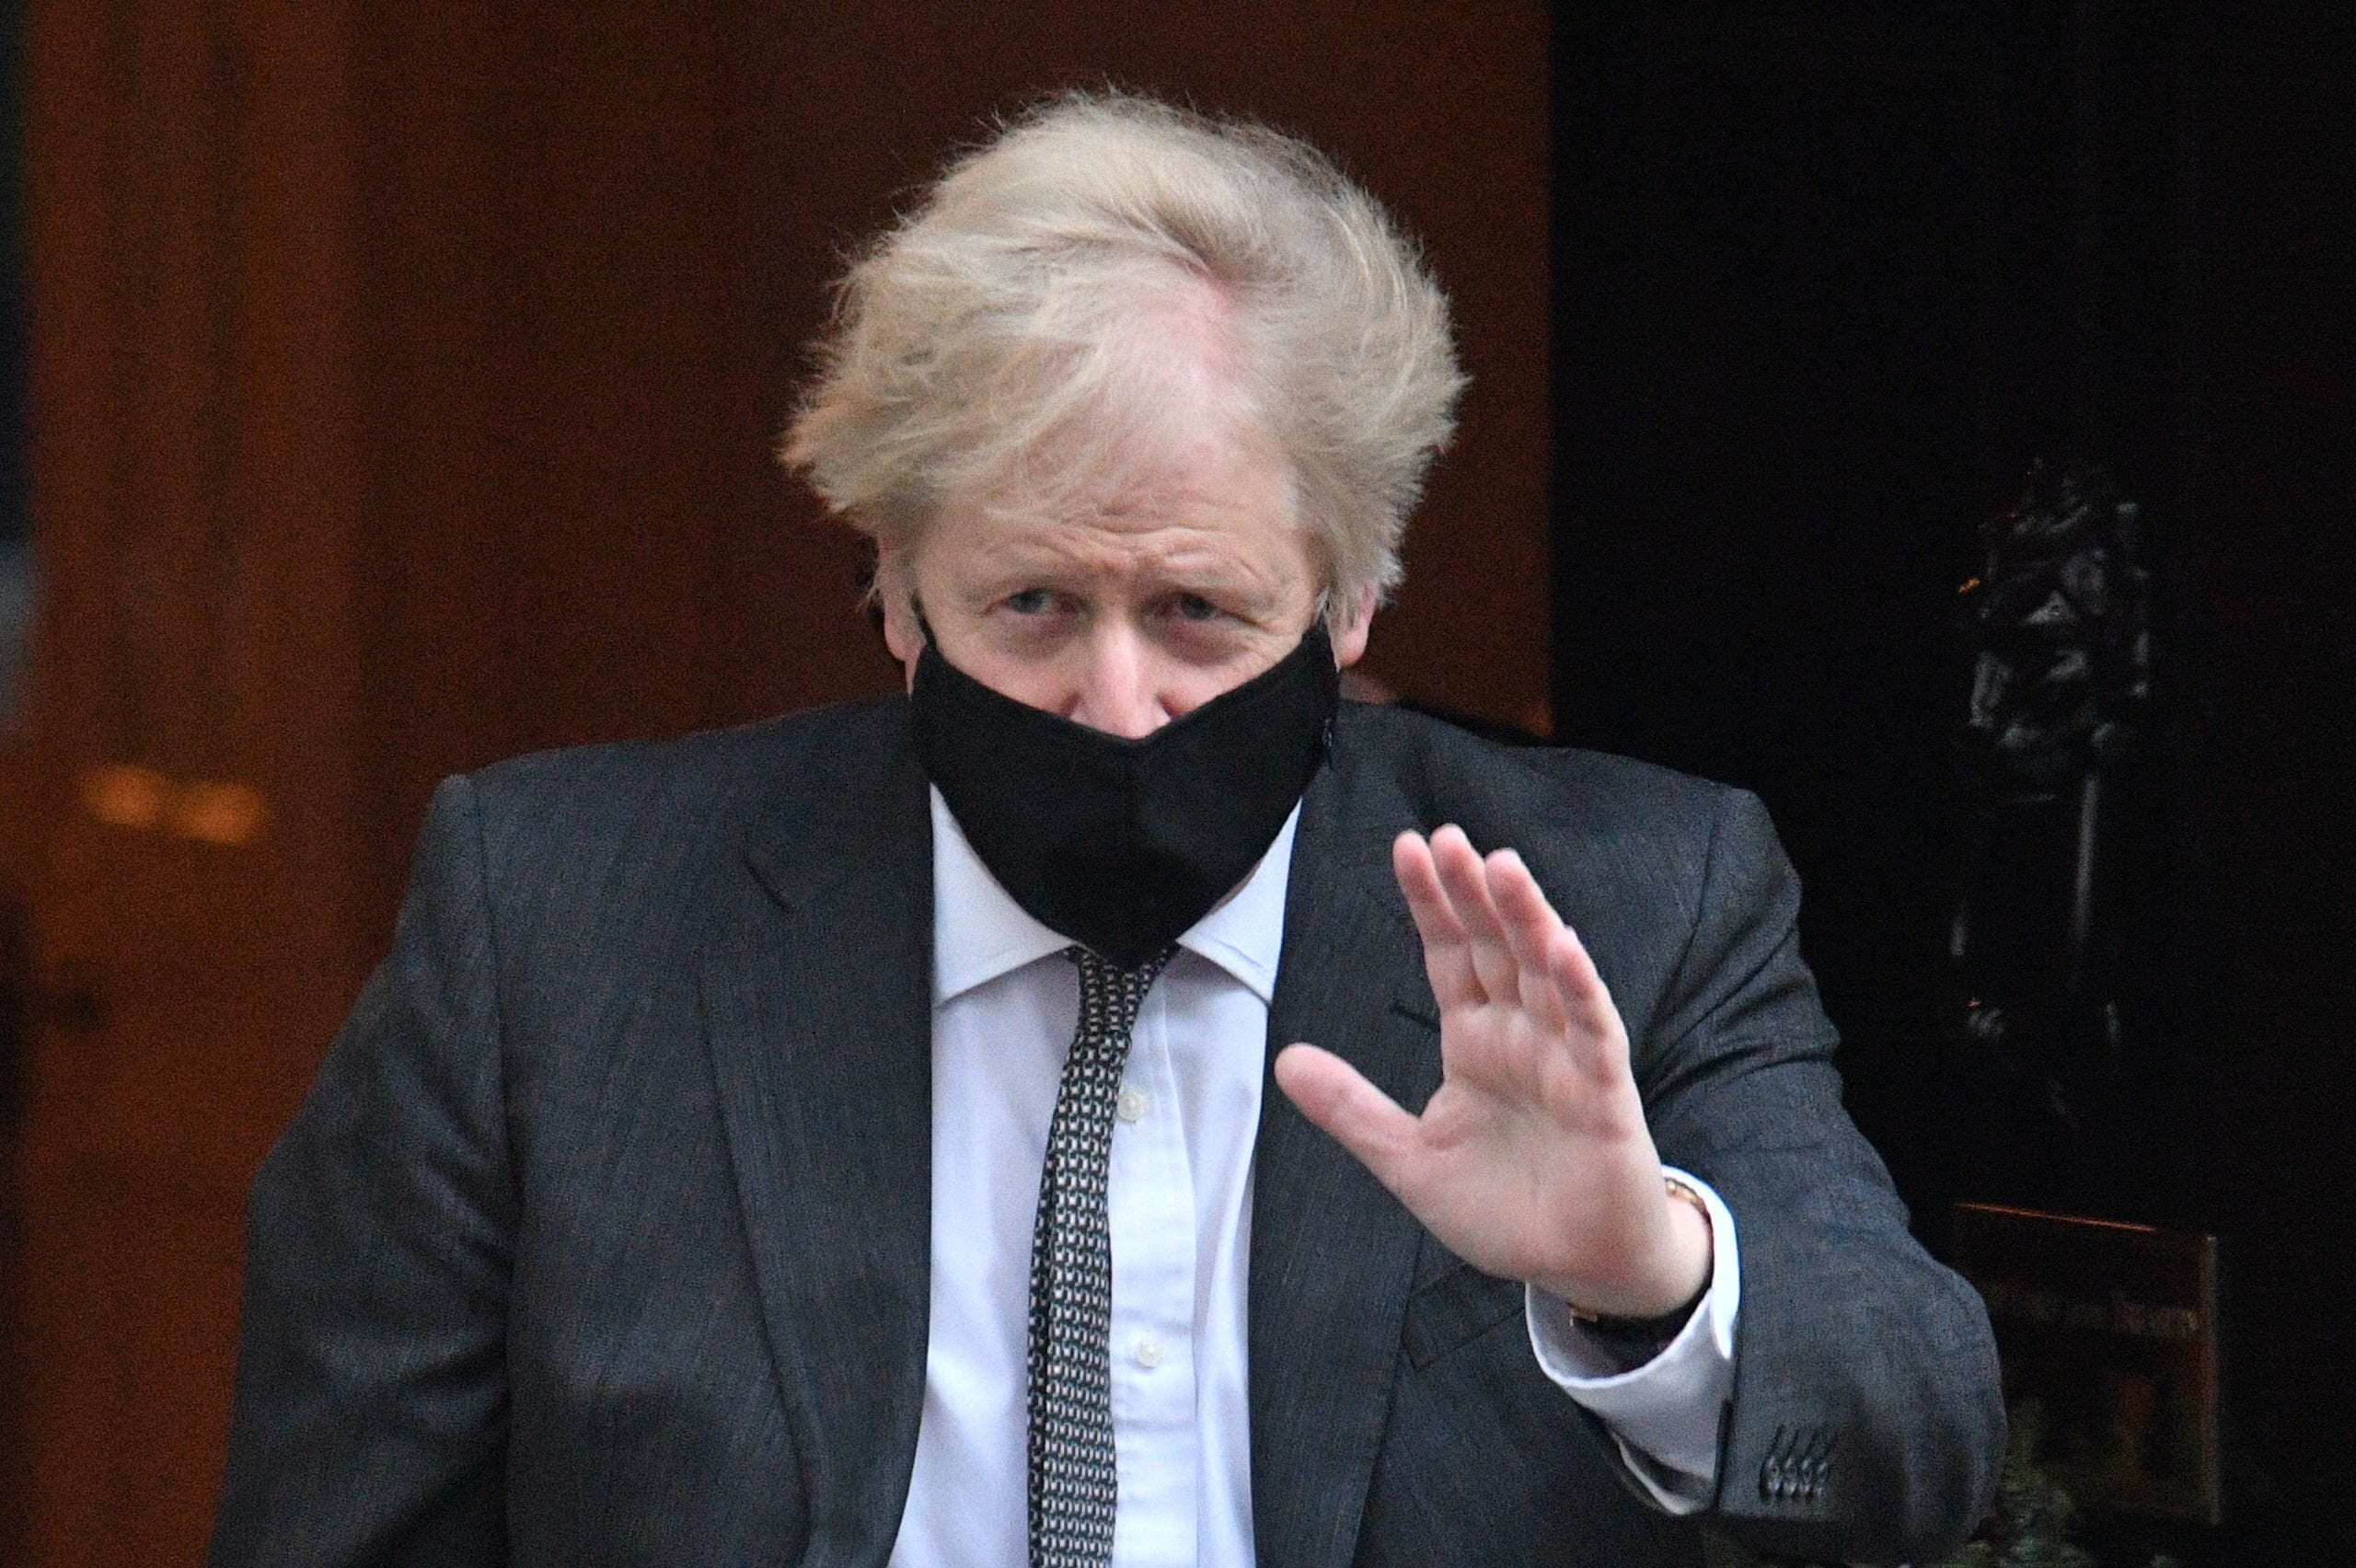 <p>Prime Minister Boris Johnson leaves Downing Street, London, for the debate in the House of Commons on the EU.</p>